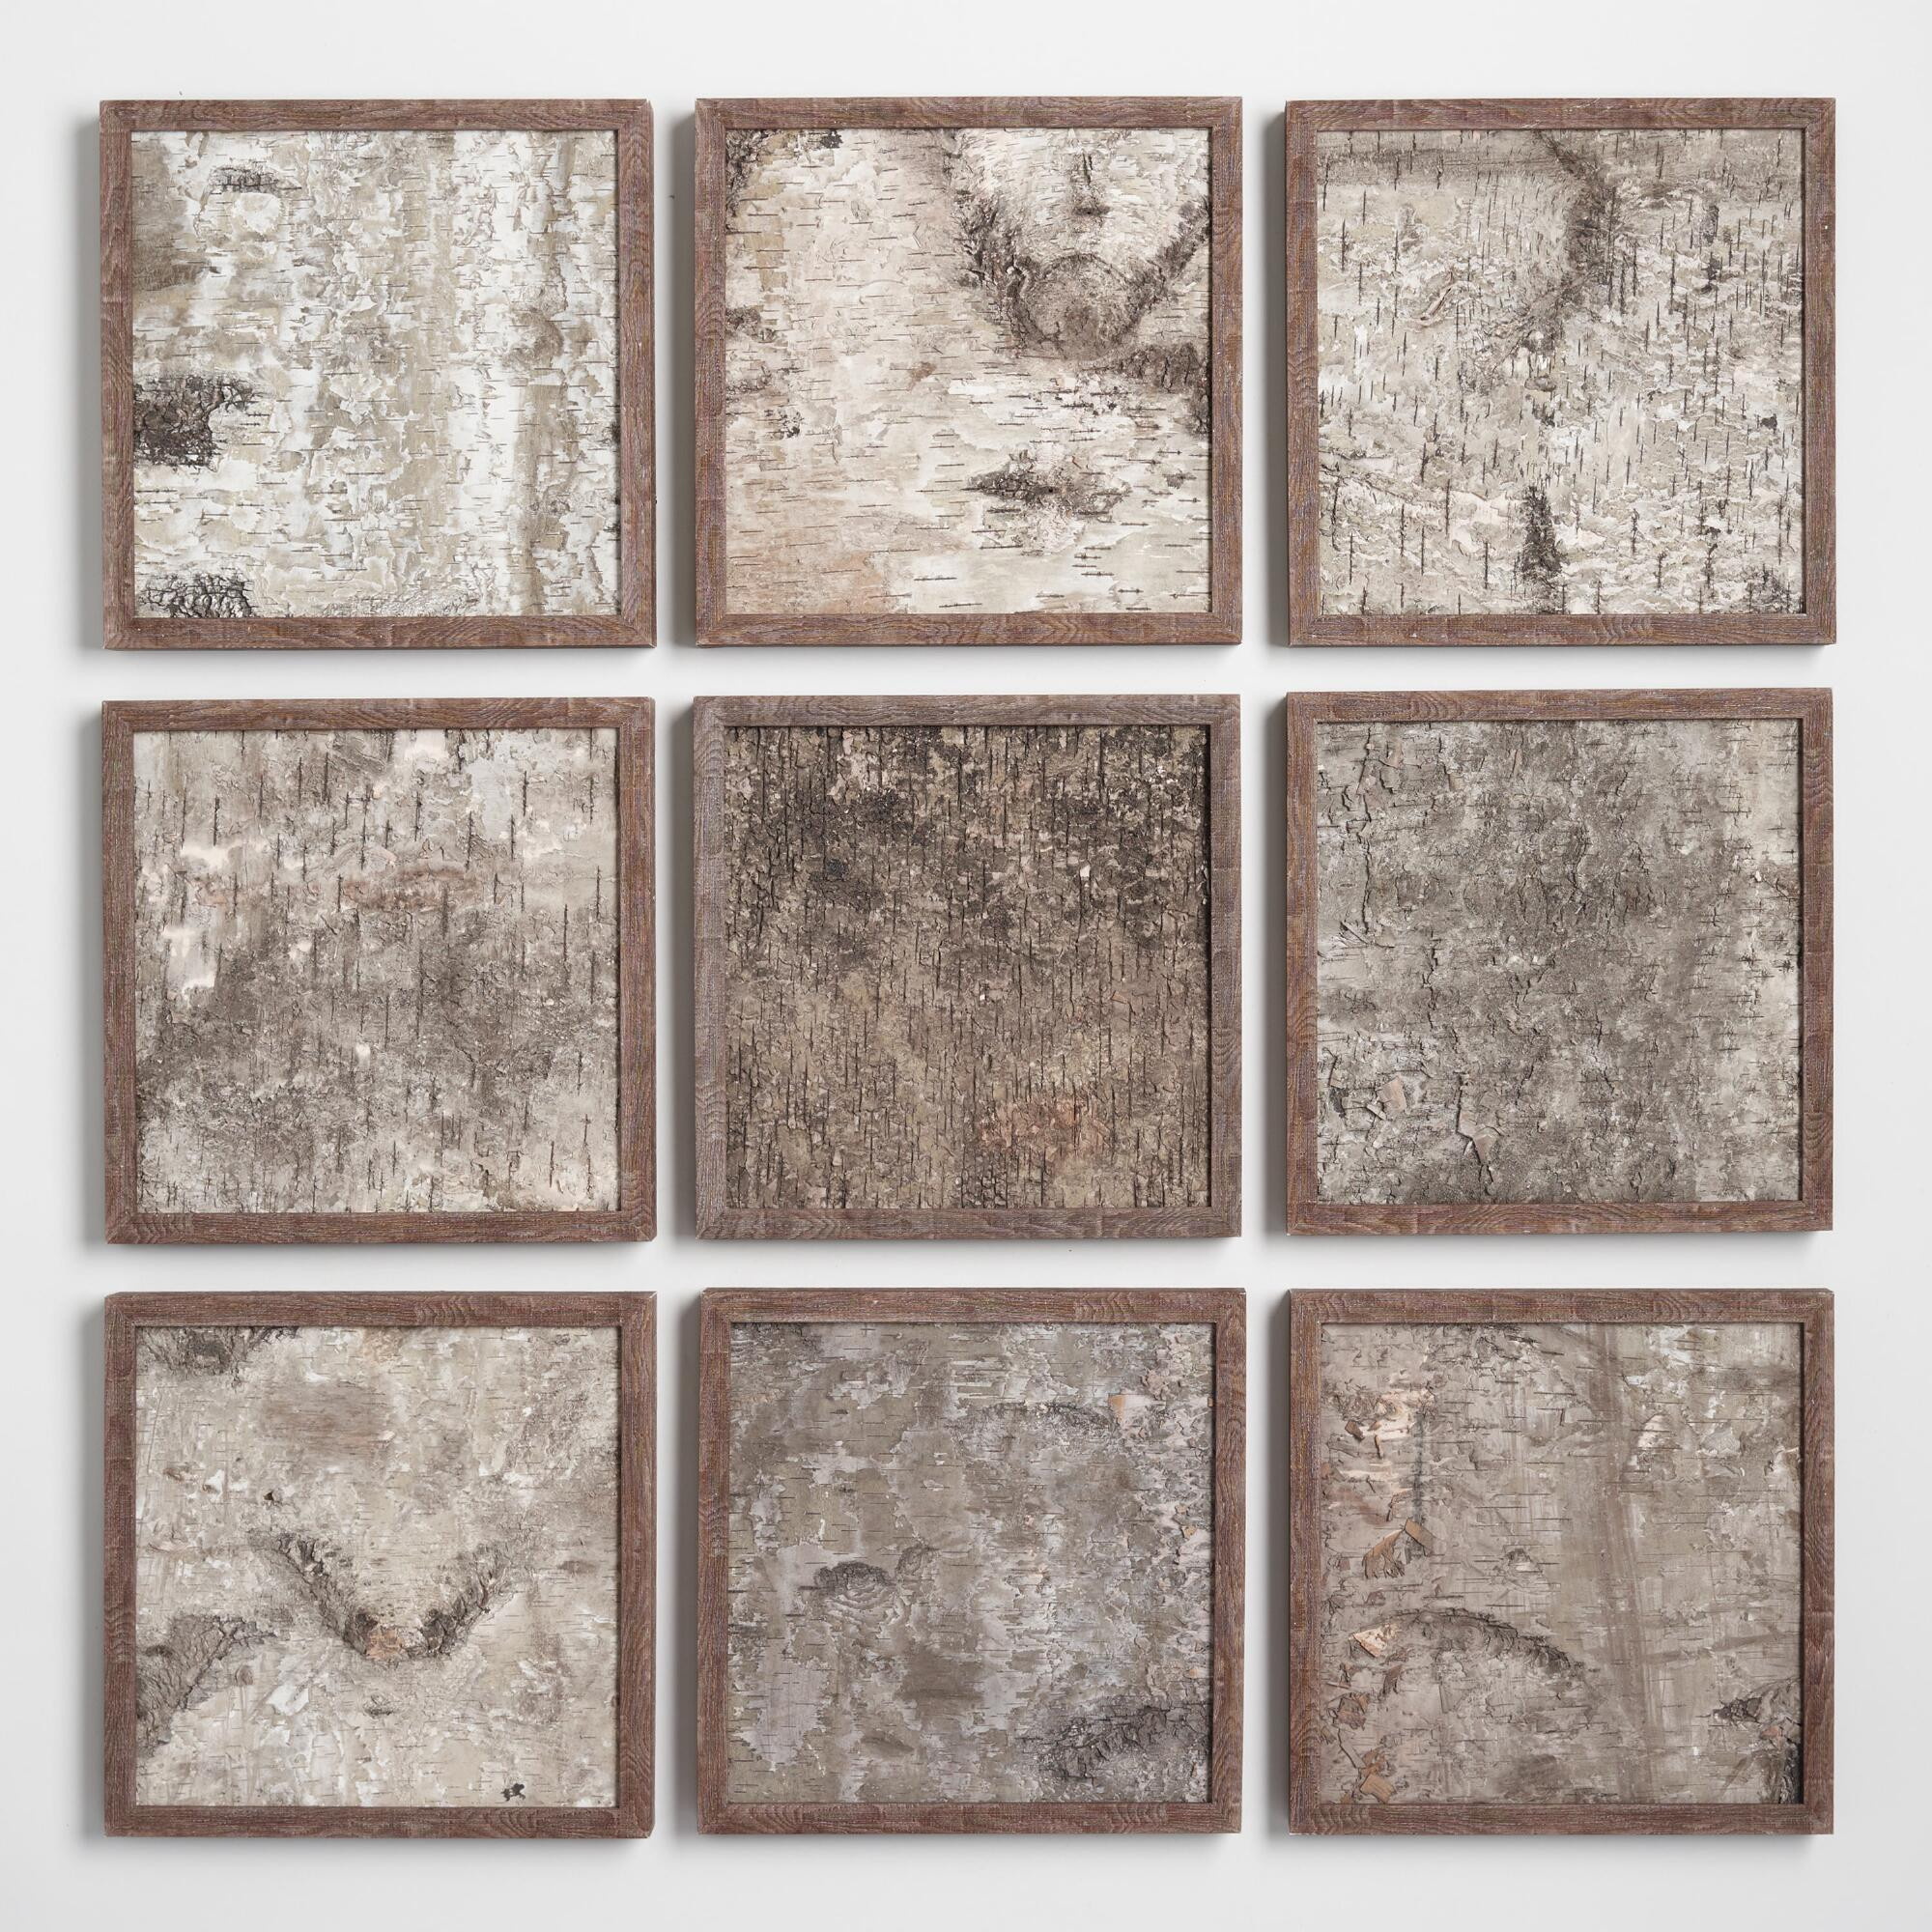 Best ideas about Panel Wall Art . Save or Pin Birch Panel Wall Art Set of 9 Now.